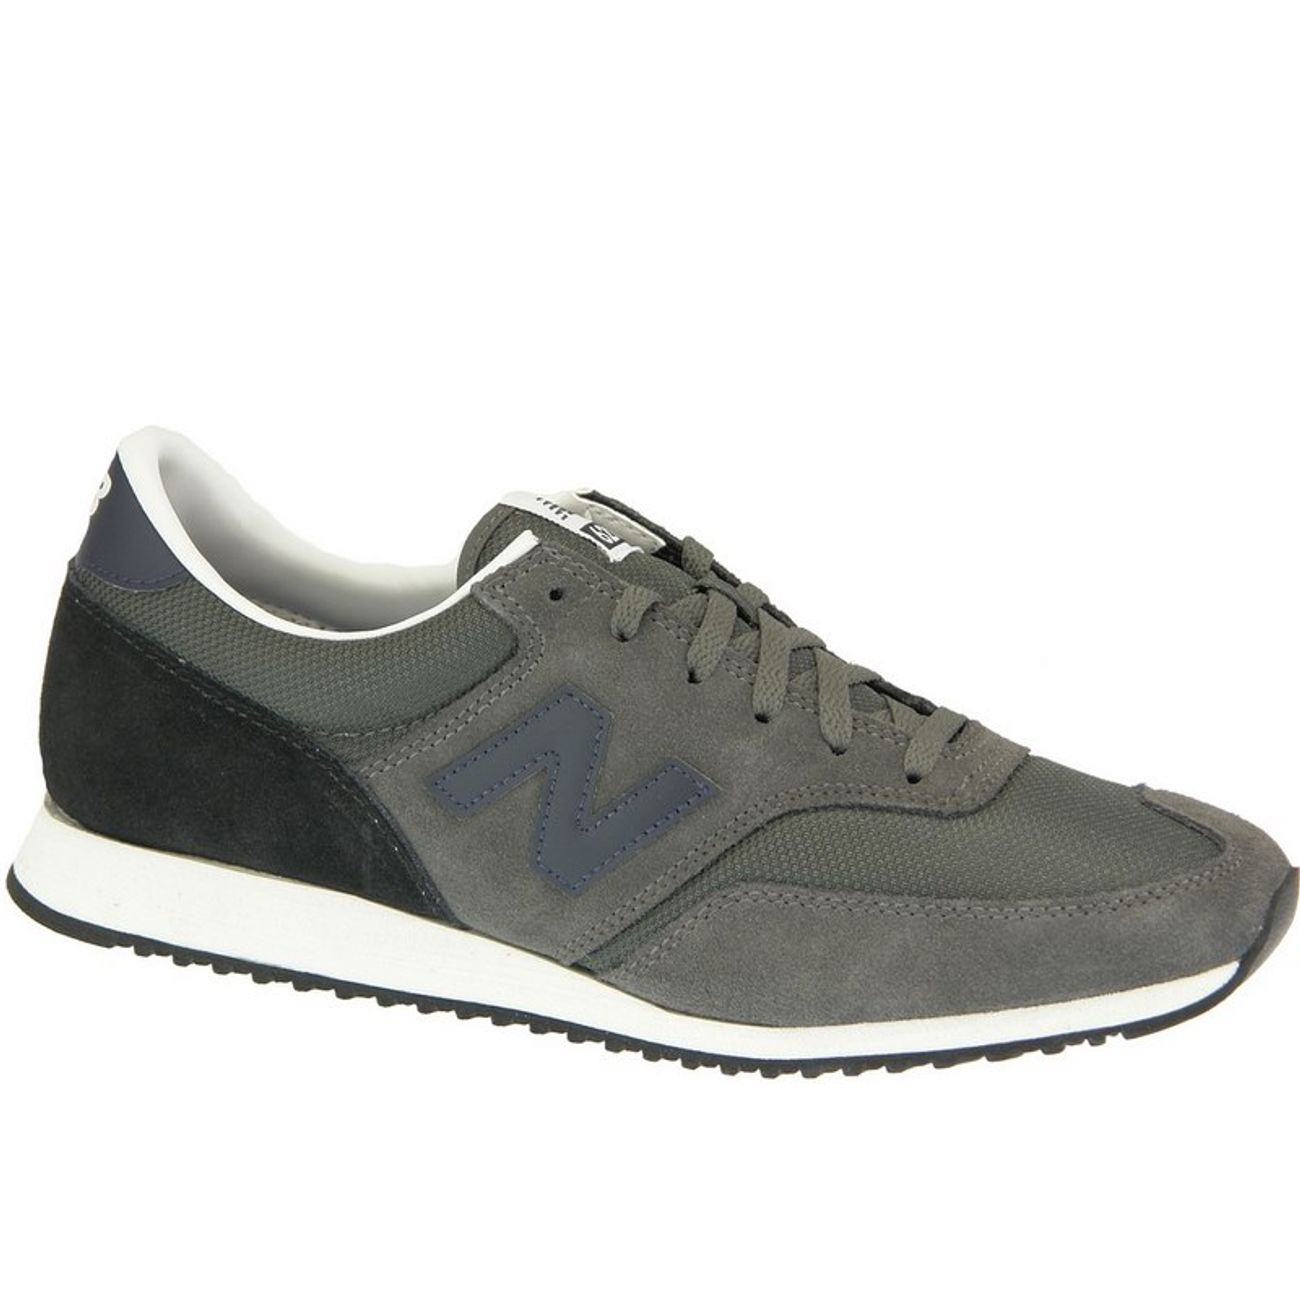 H New Balance Homme Gris ModeLifestyle Cm620sgn Baskets yvmOP80Nnw